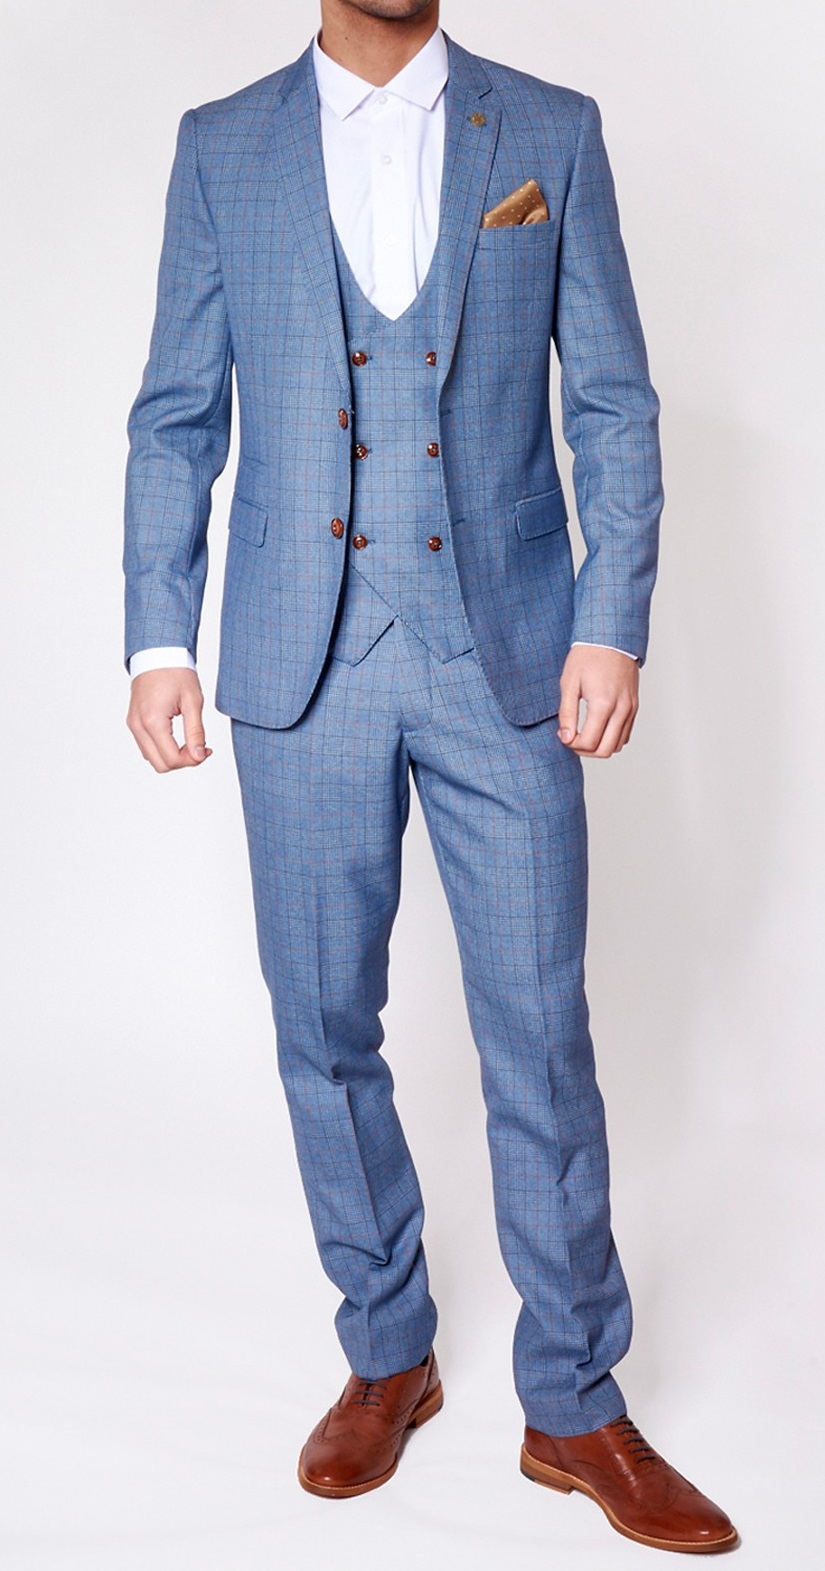 George Light Blue Check Print Three Piece Suit | Suits Delivered ...